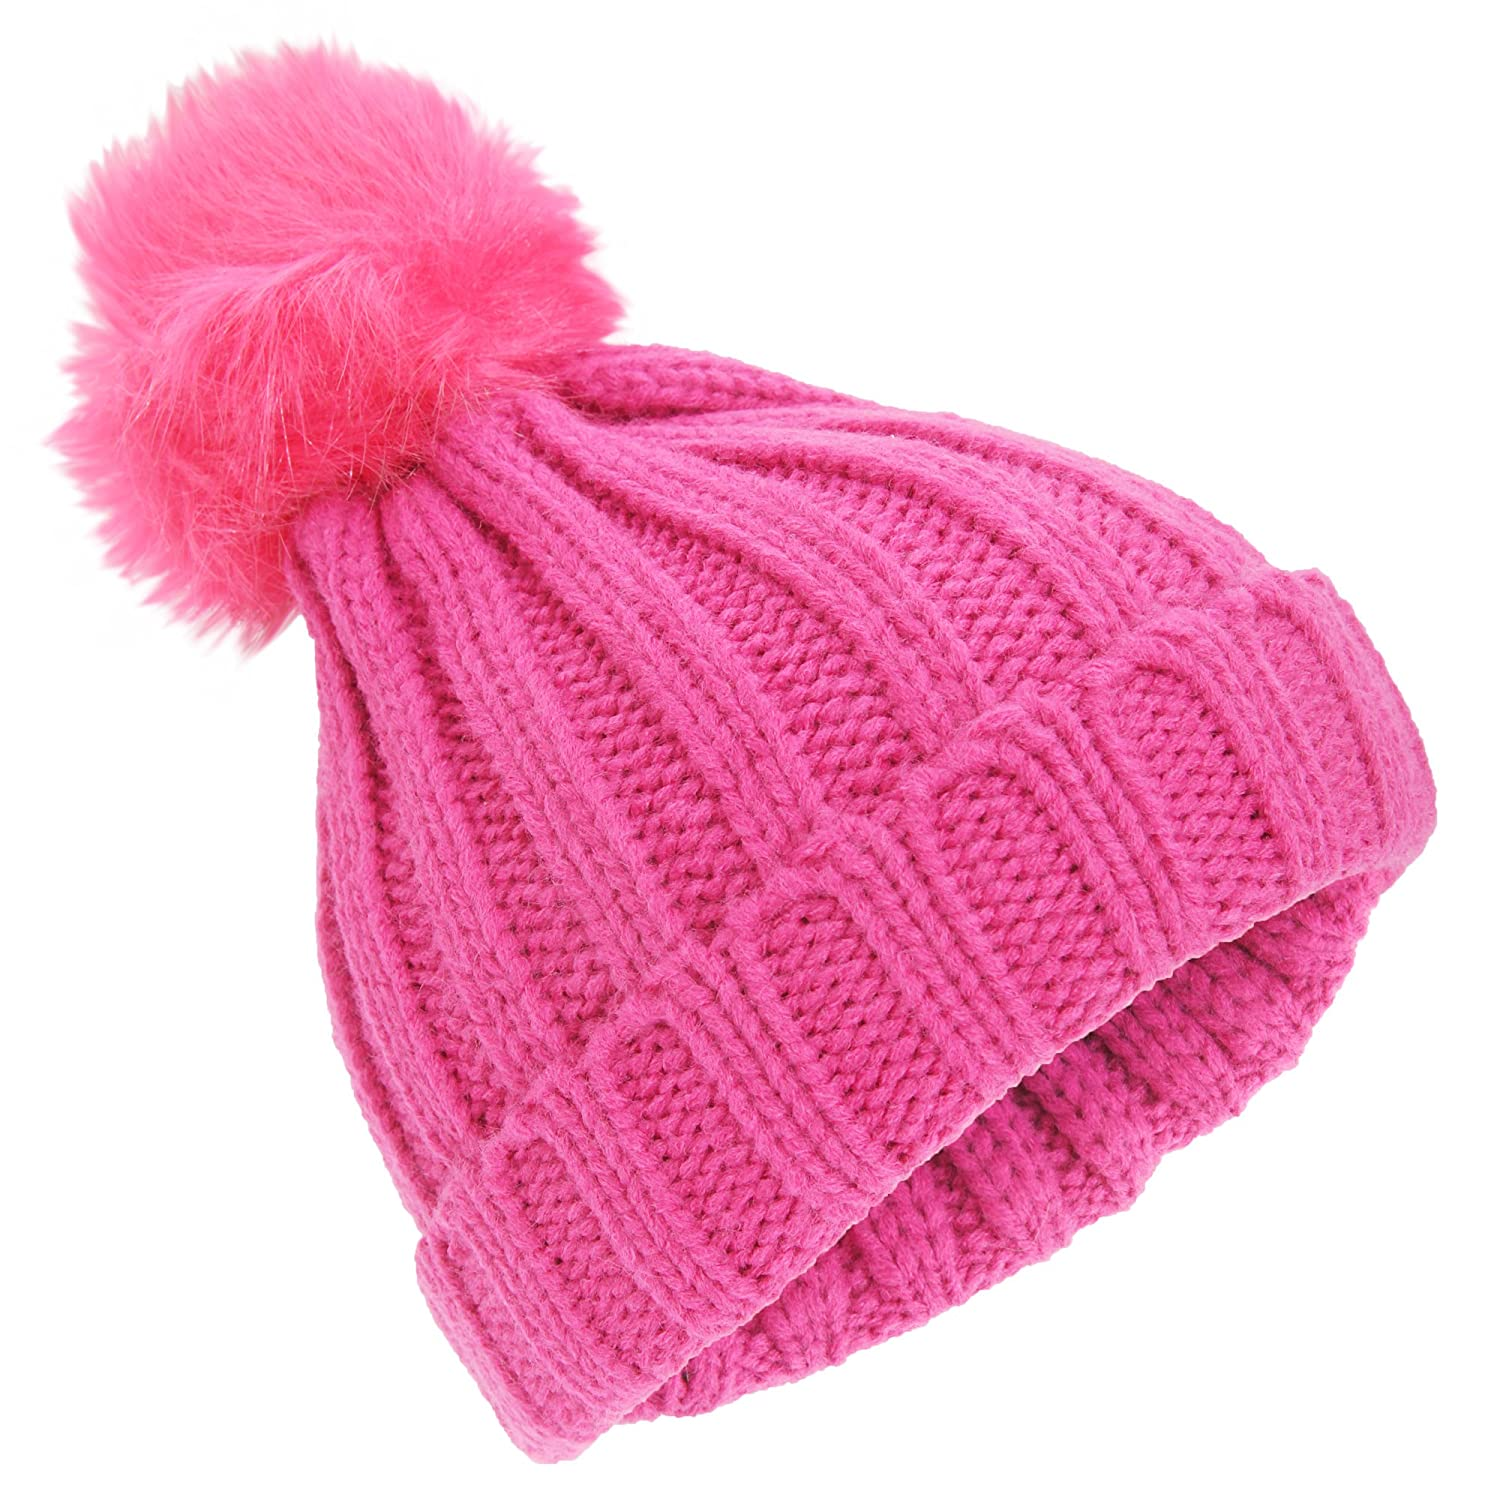 Universal Textiles Childrens Girls Rockjock Cable Knit Faux Fur Pom Pom Winter Beanie Hat UTHA526_1